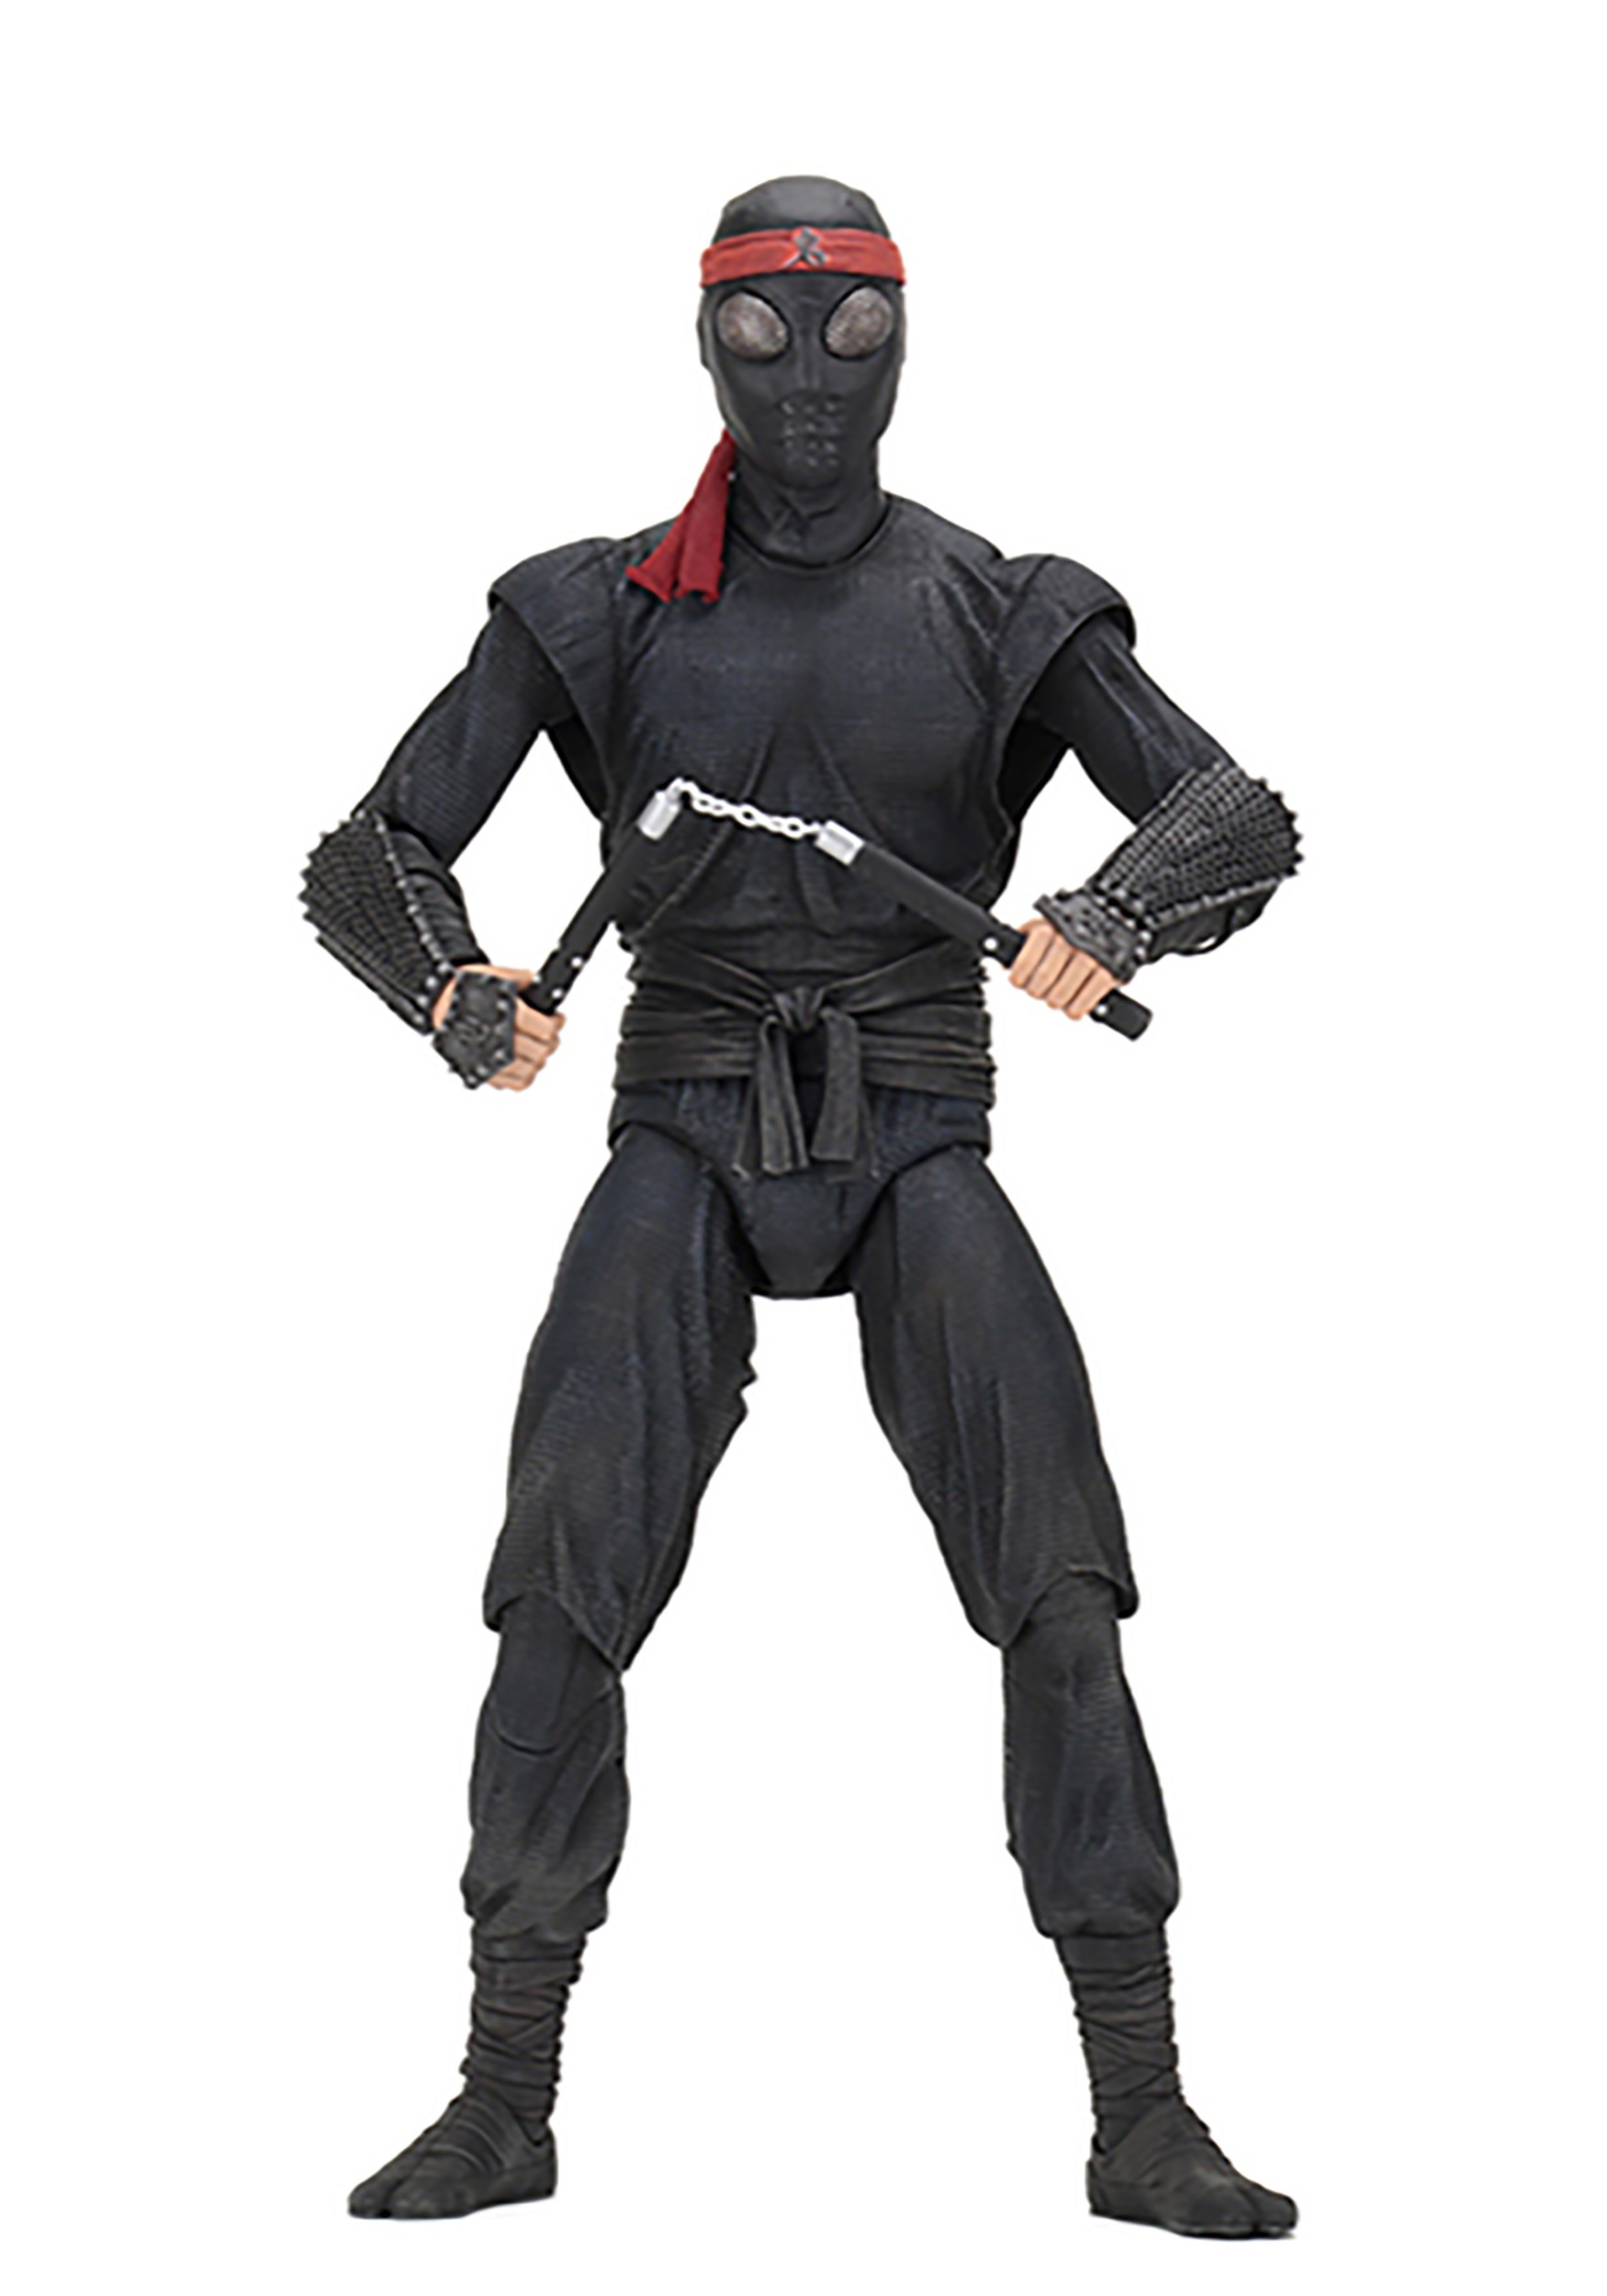 TMNT 1990 1/4 Scale Foot Soldier Action Figure